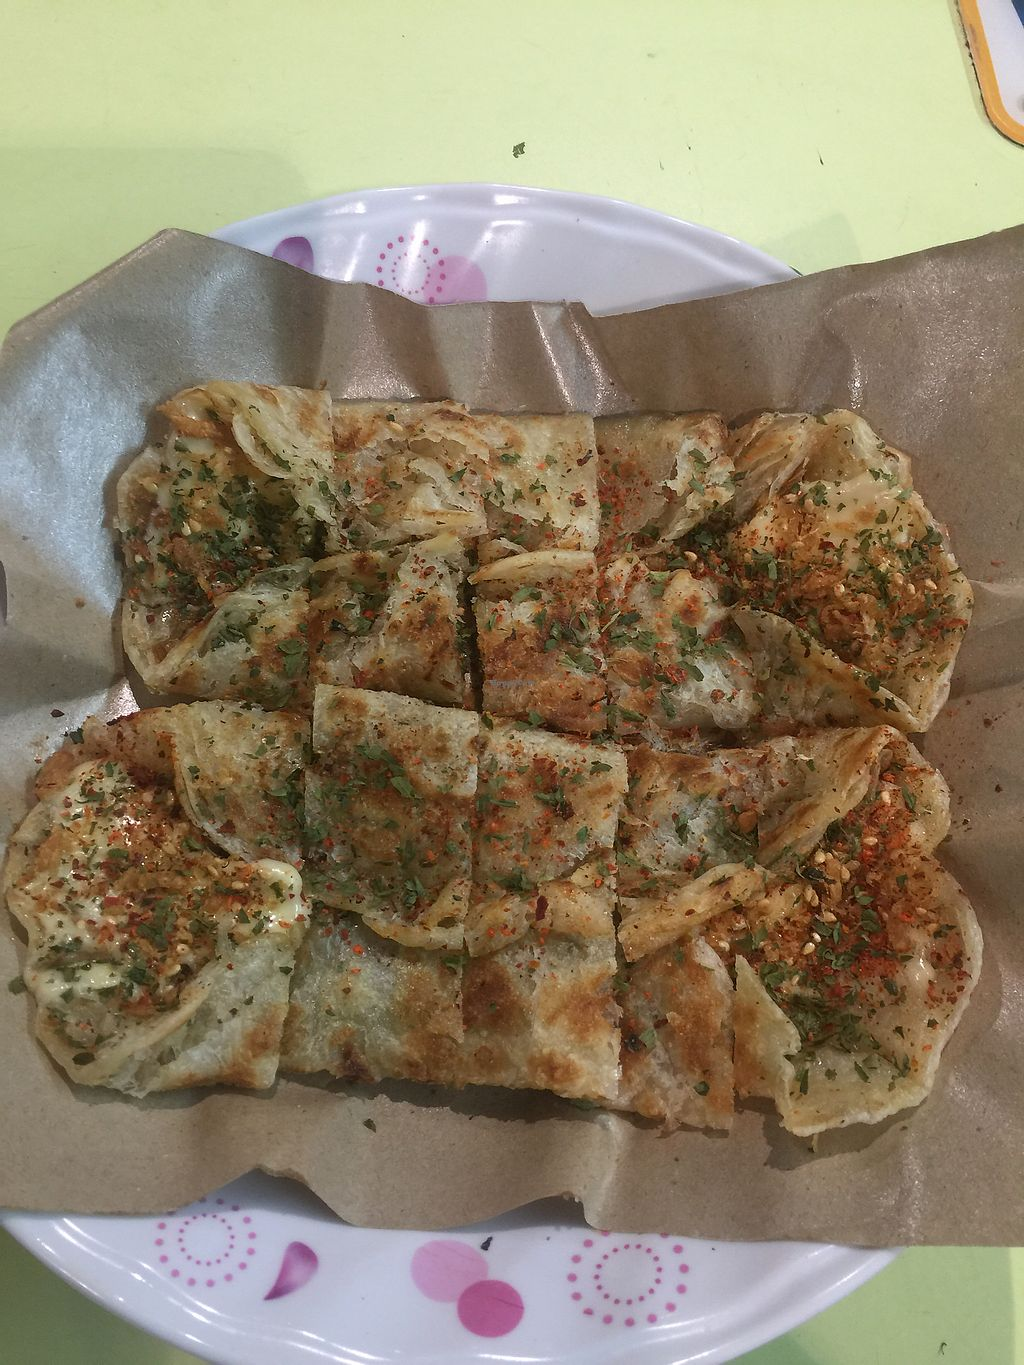 """Photo of Zi Fu Lin Vegetarian - temporarily closed  by <a href=""""/members/profile/FrancisChua"""">FrancisChua</a> <br/>Cheese prata <br/> January 12, 2018  - <a href='/contact/abuse/image/84881/345758'>Report</a>"""